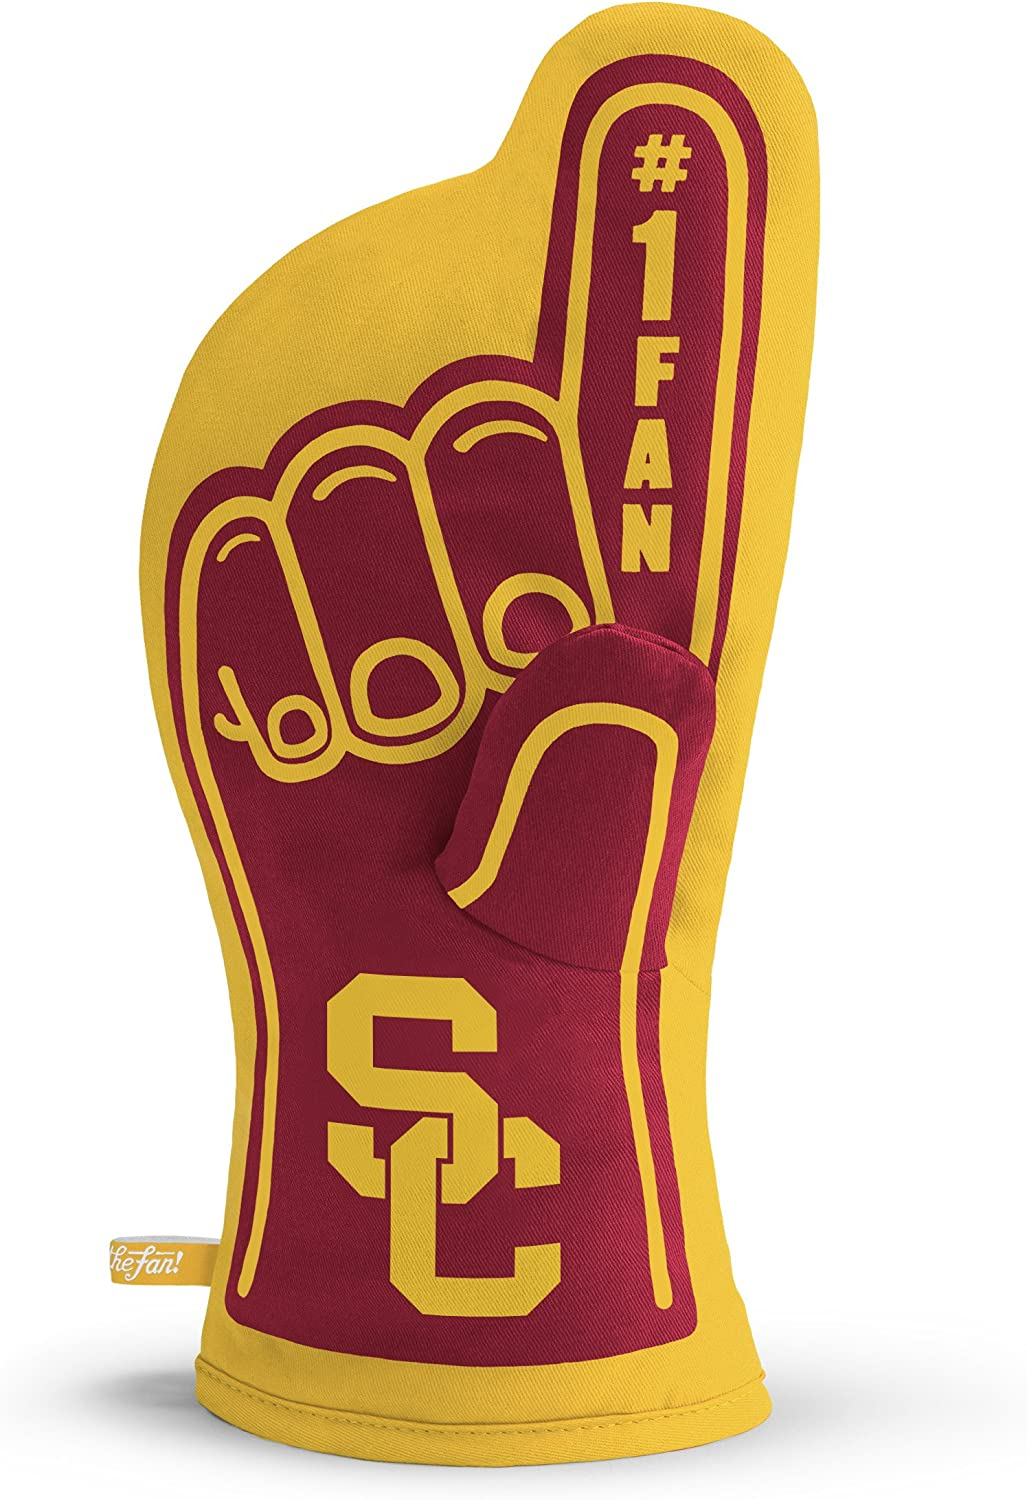 YouTheFan NCAA #1 Oven Mitt:13.25'' x 6.5'' Heat Resistant 100% Quilted Cotton Team Oven Mitt